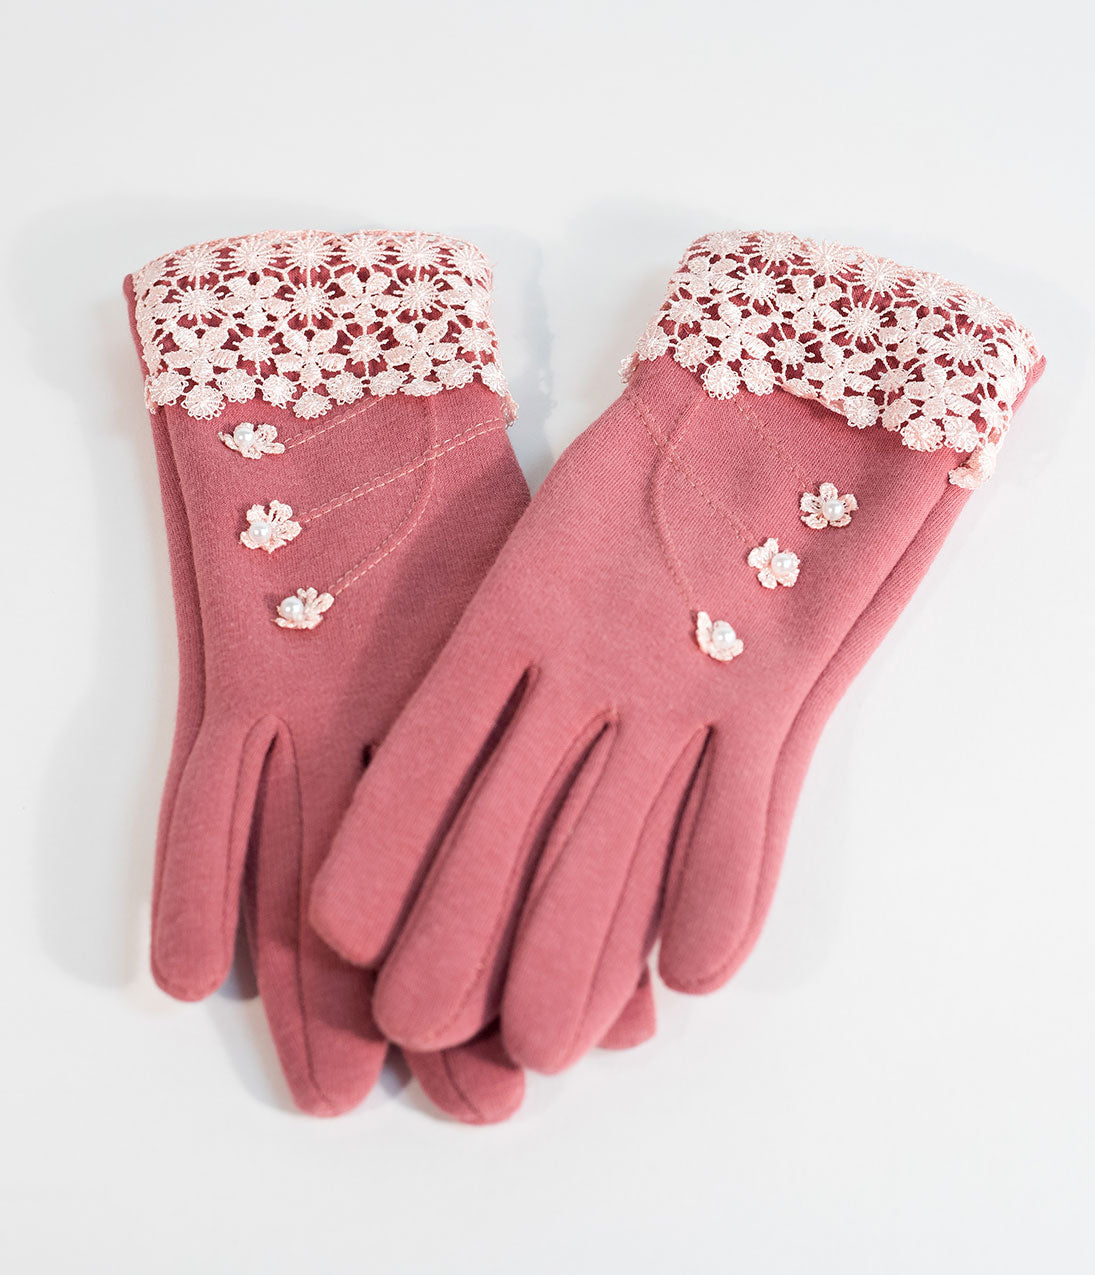 Vintage Style Gloves- Long, Wrist, Evening, Day, Leather, Lace Vintage Style Pink Lace  Ivory Pearl Summer Gloves $22.00 AT vintagedancer.com